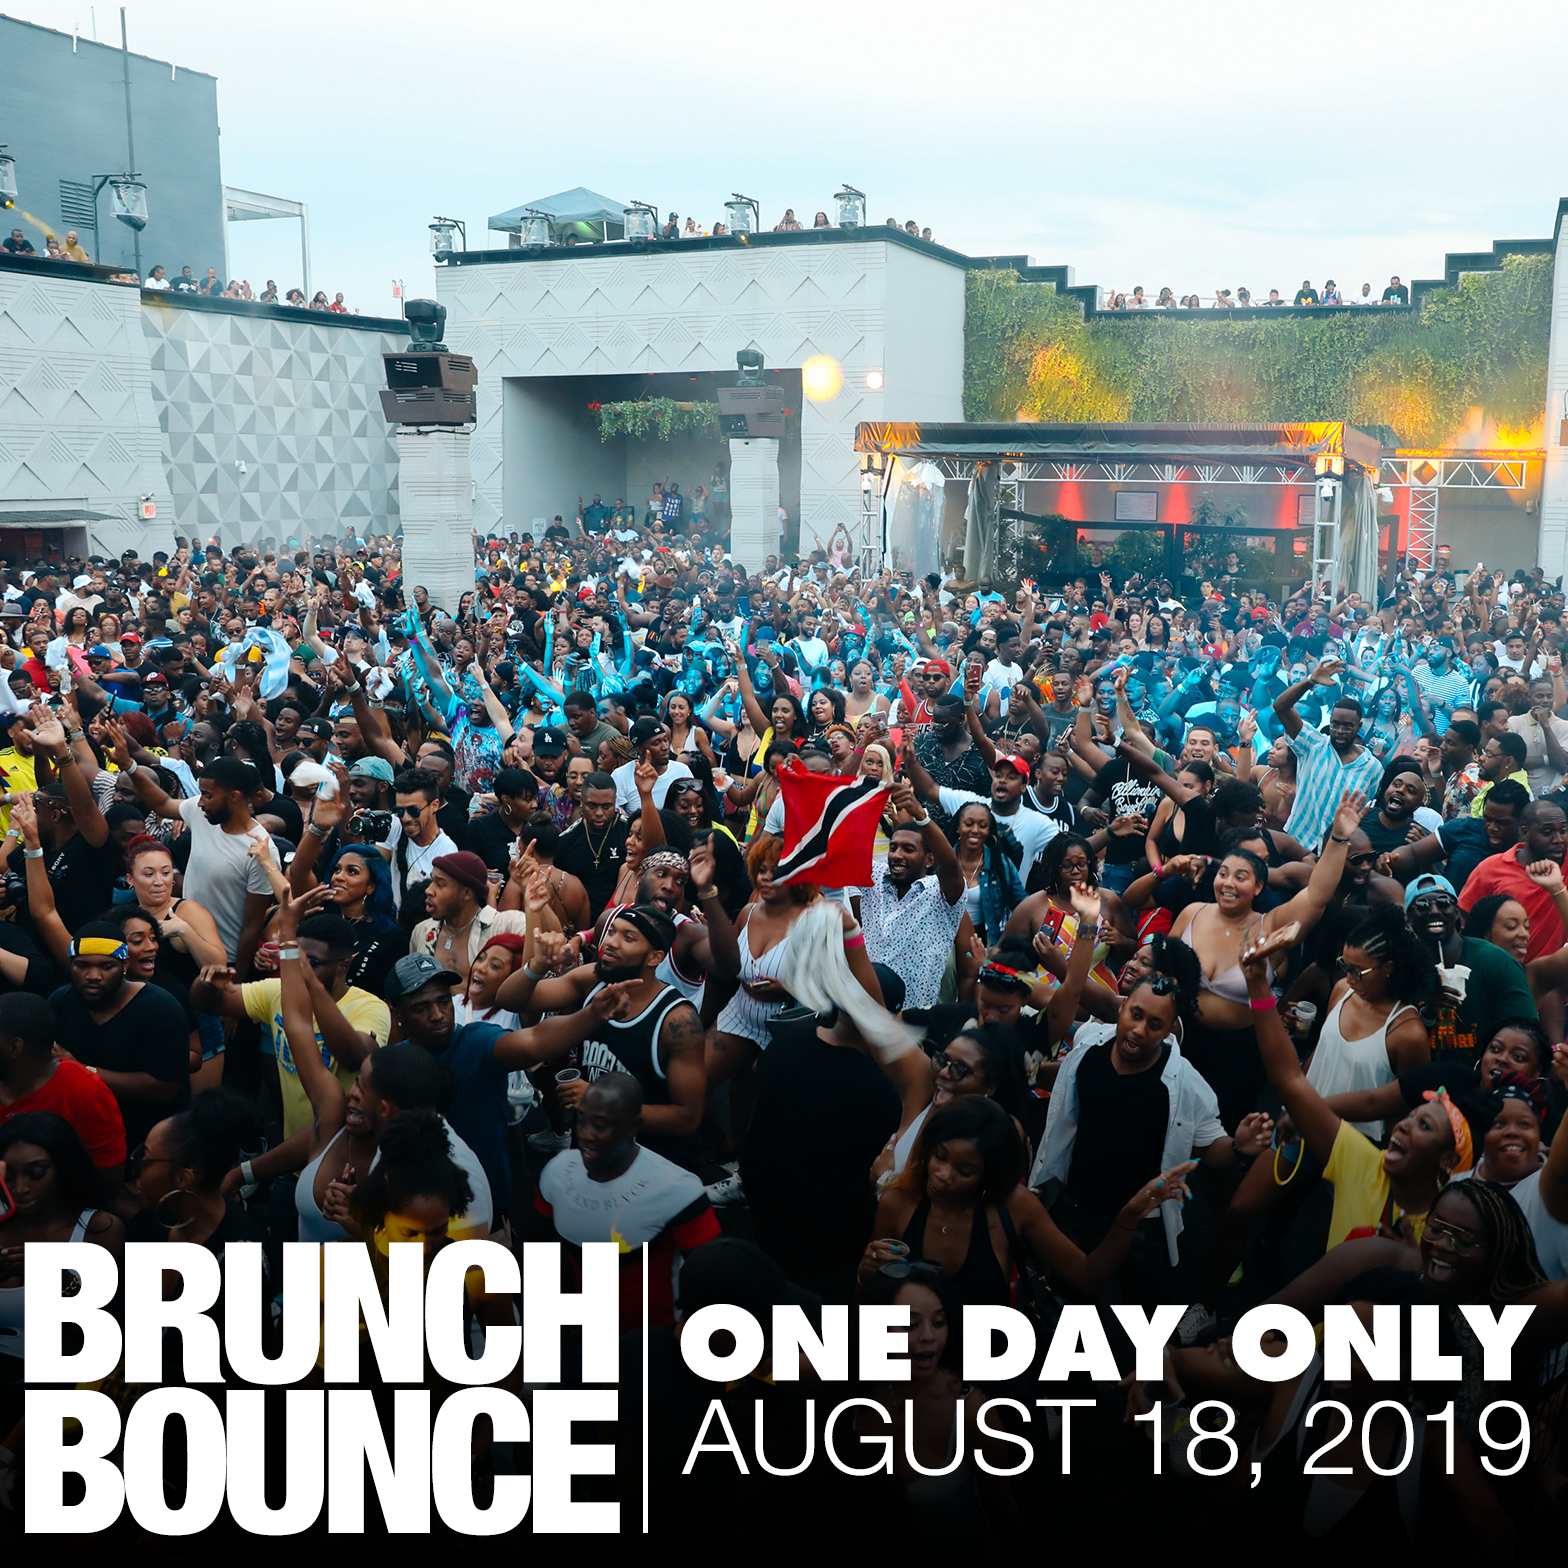 One Day Only August 18, 2019